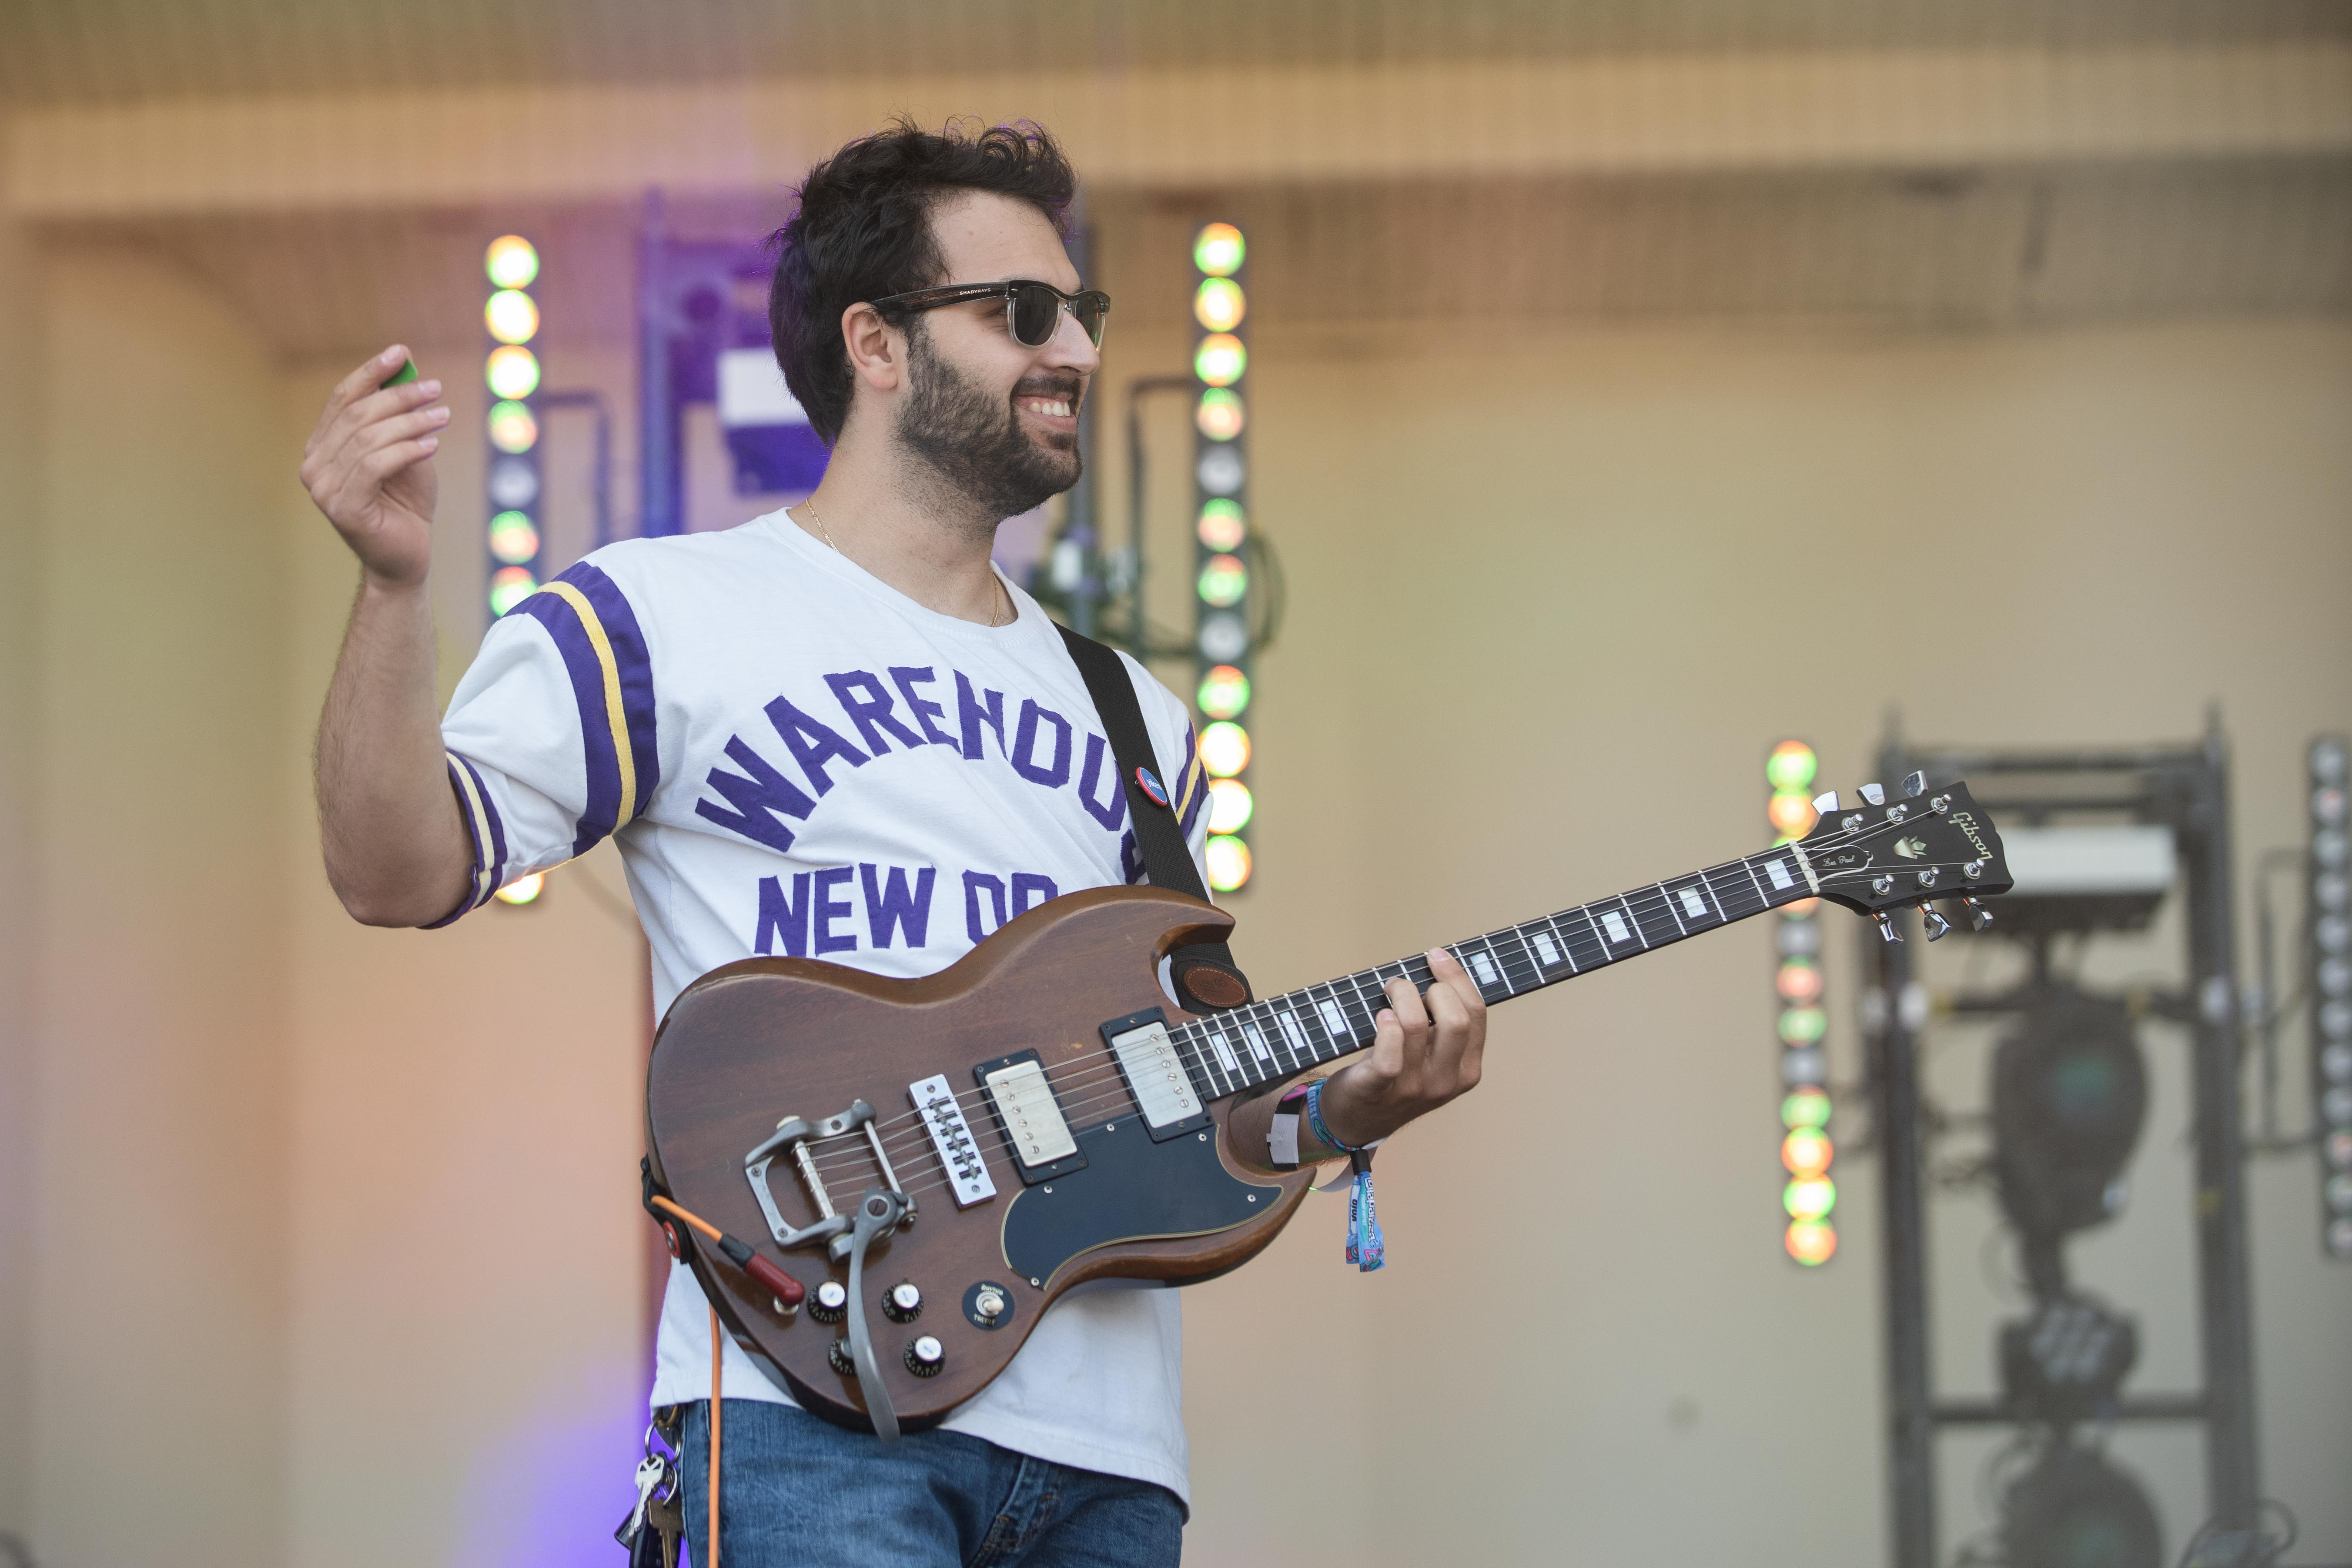 Dimitri Panoutsos and the rest of Rookie perform Friday afternoon at Lollapalooza 2021.